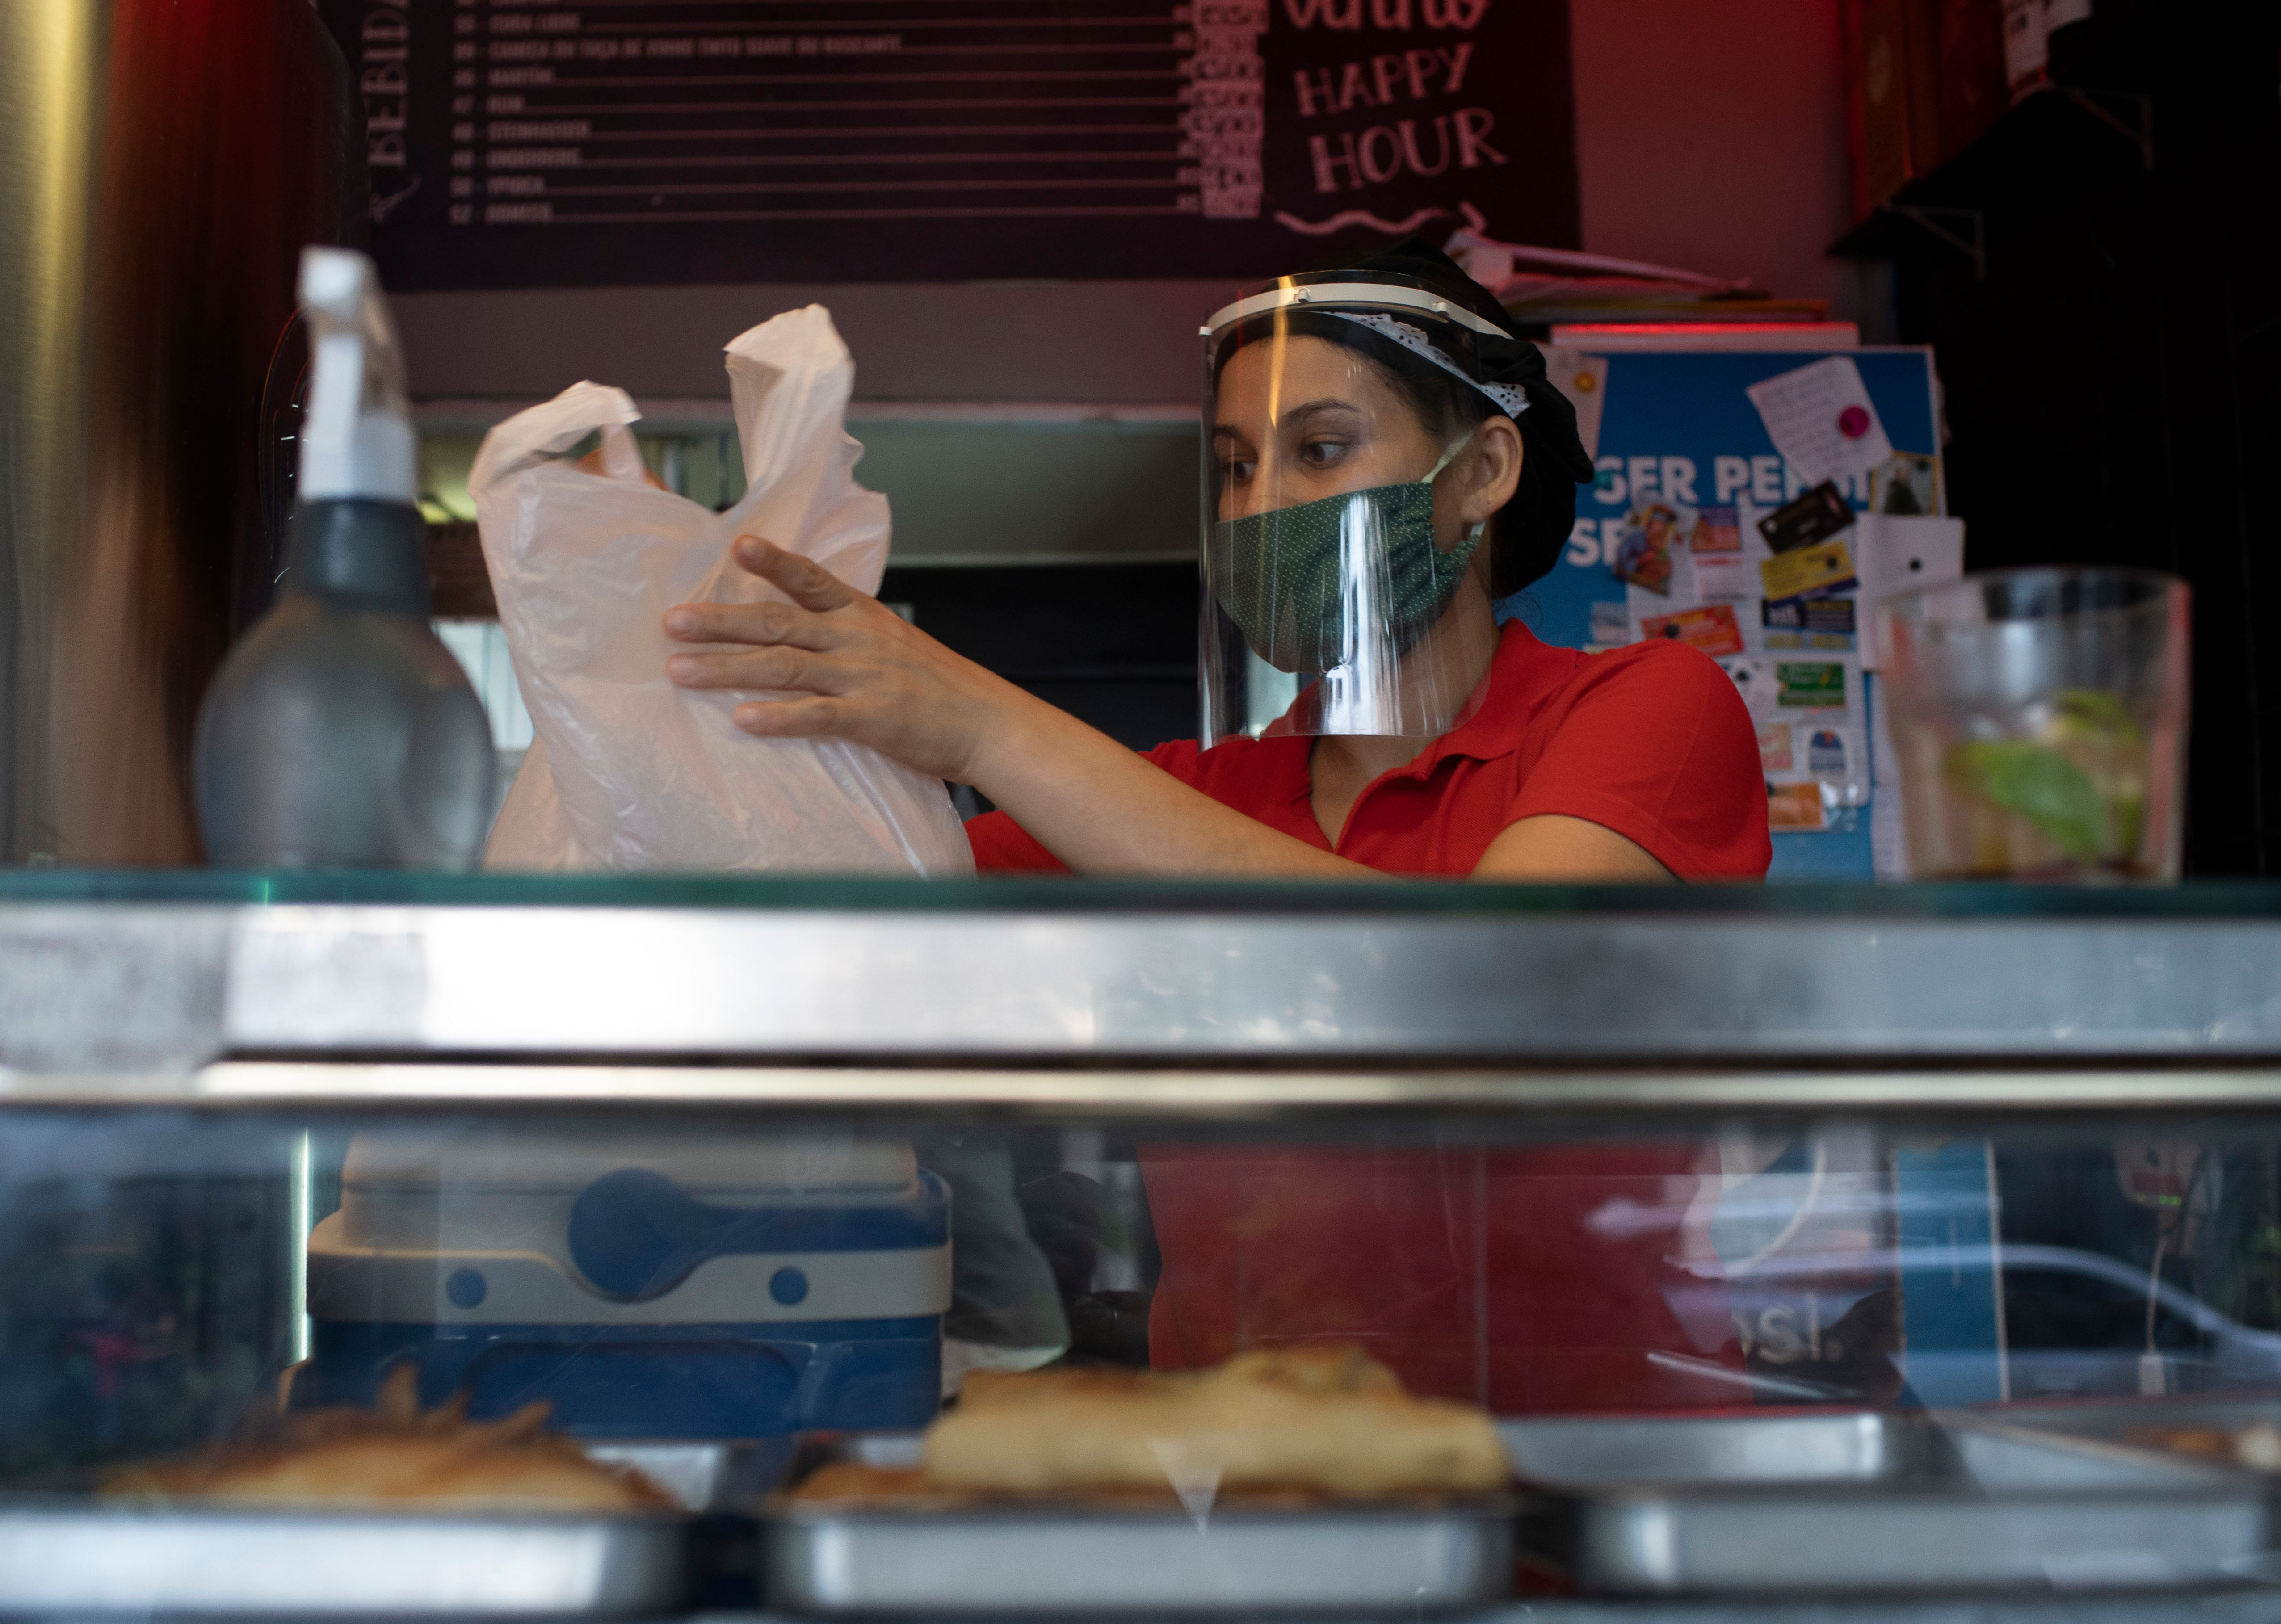 Woman wearing face mask and face shield preparing plastic bag of food from behind a counter.